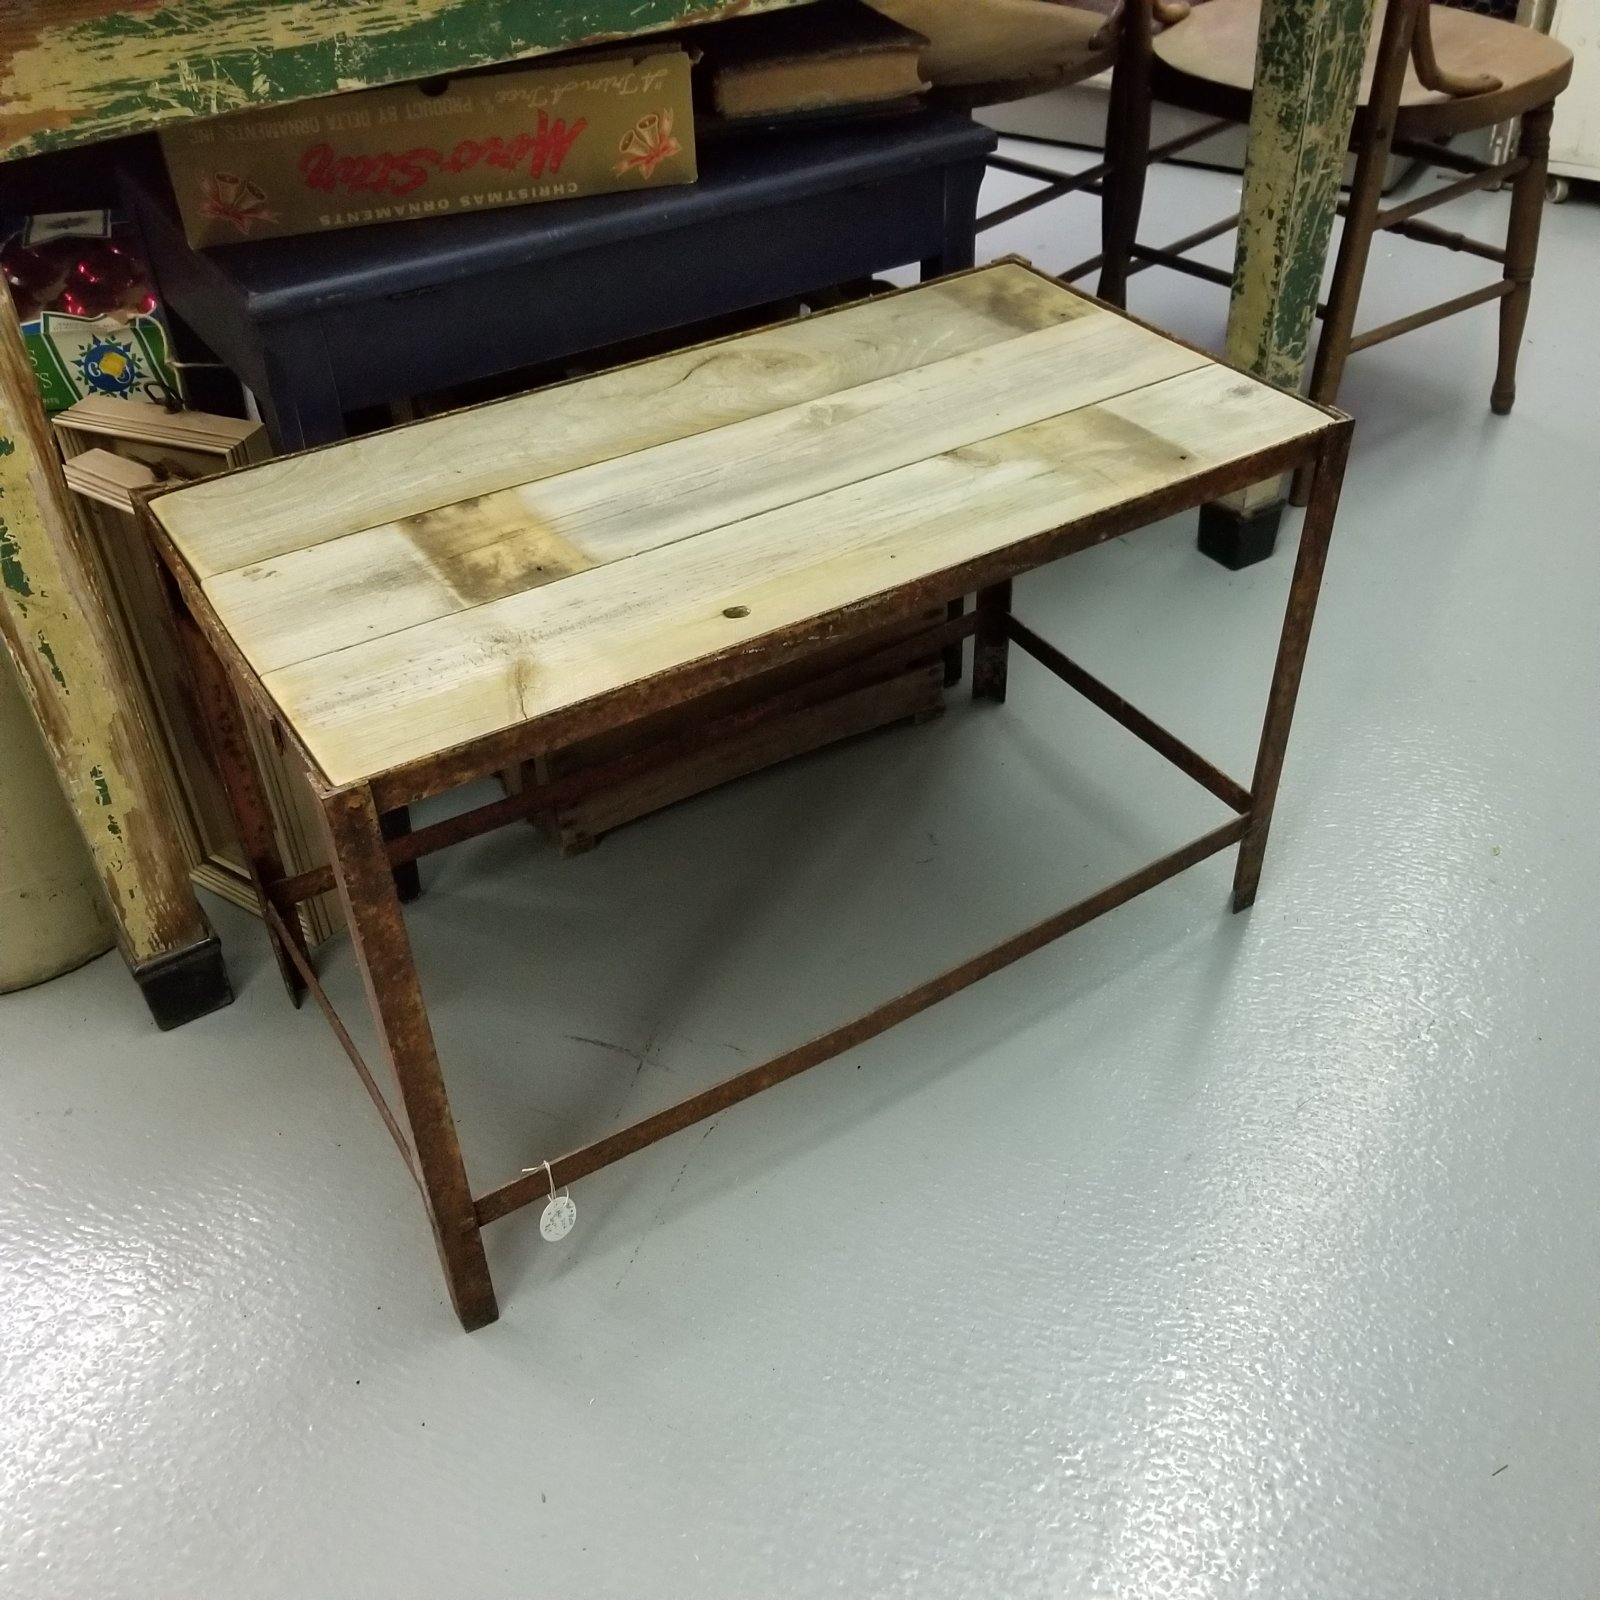 Wood & Metal Coffee Table or Bench